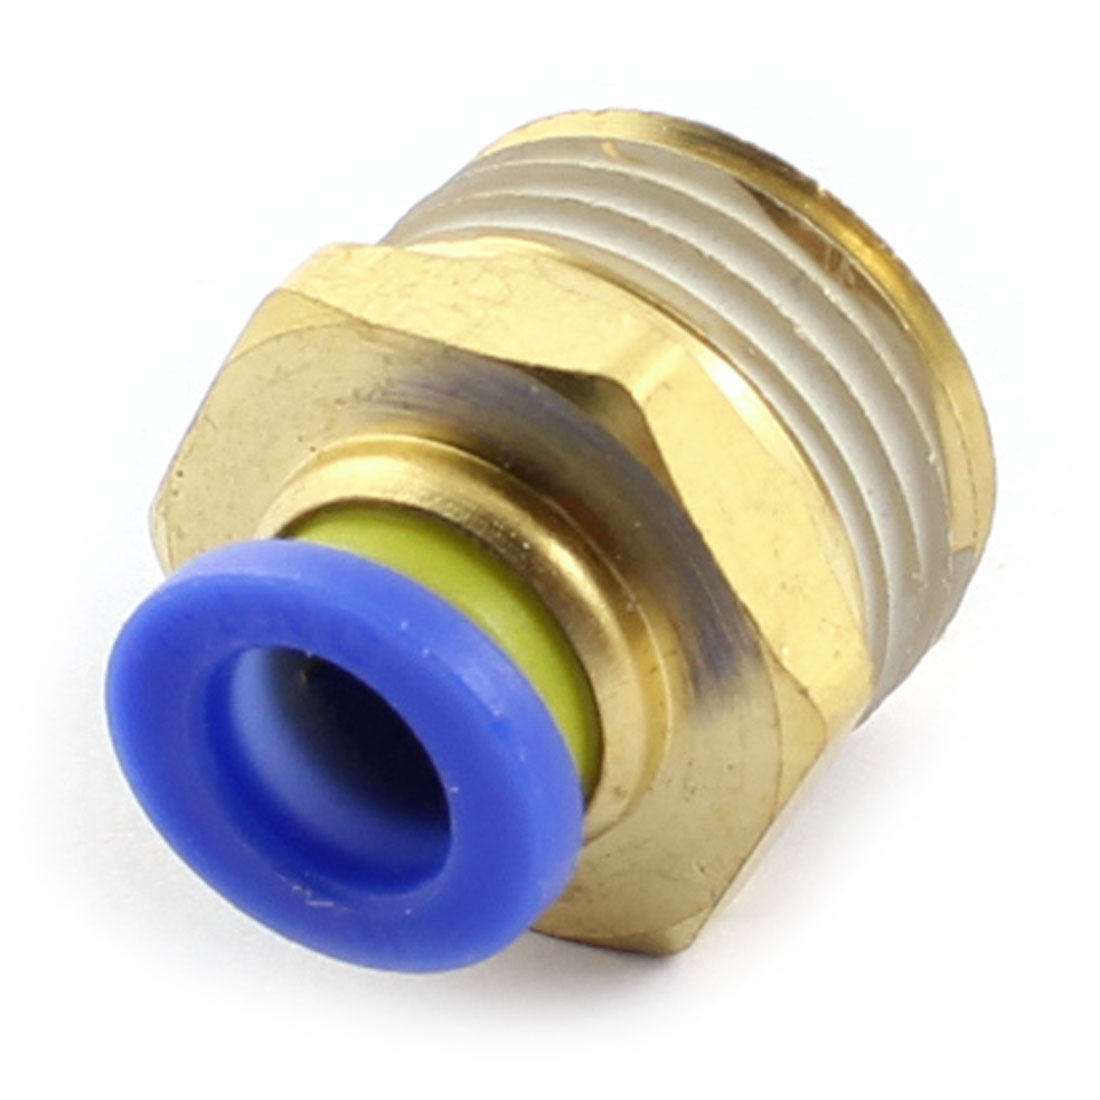 1/2PT Male Threaded Straight Air Pneumatic Quick Coupler Coupling Joint Hose Connector for 8mm OD Push in Pipe